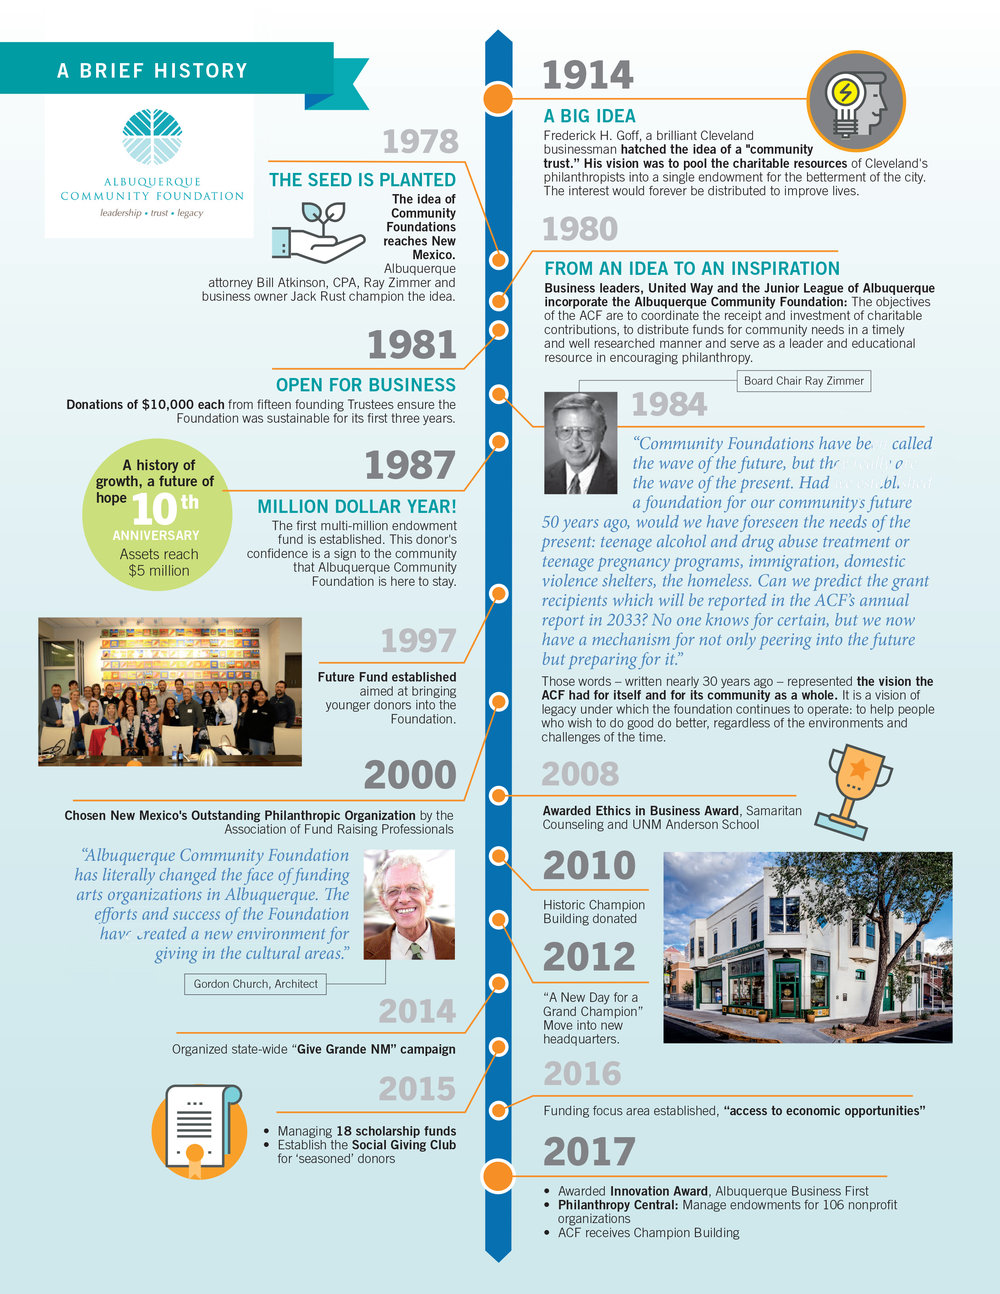 The History of The Albuquerque Community Foundation